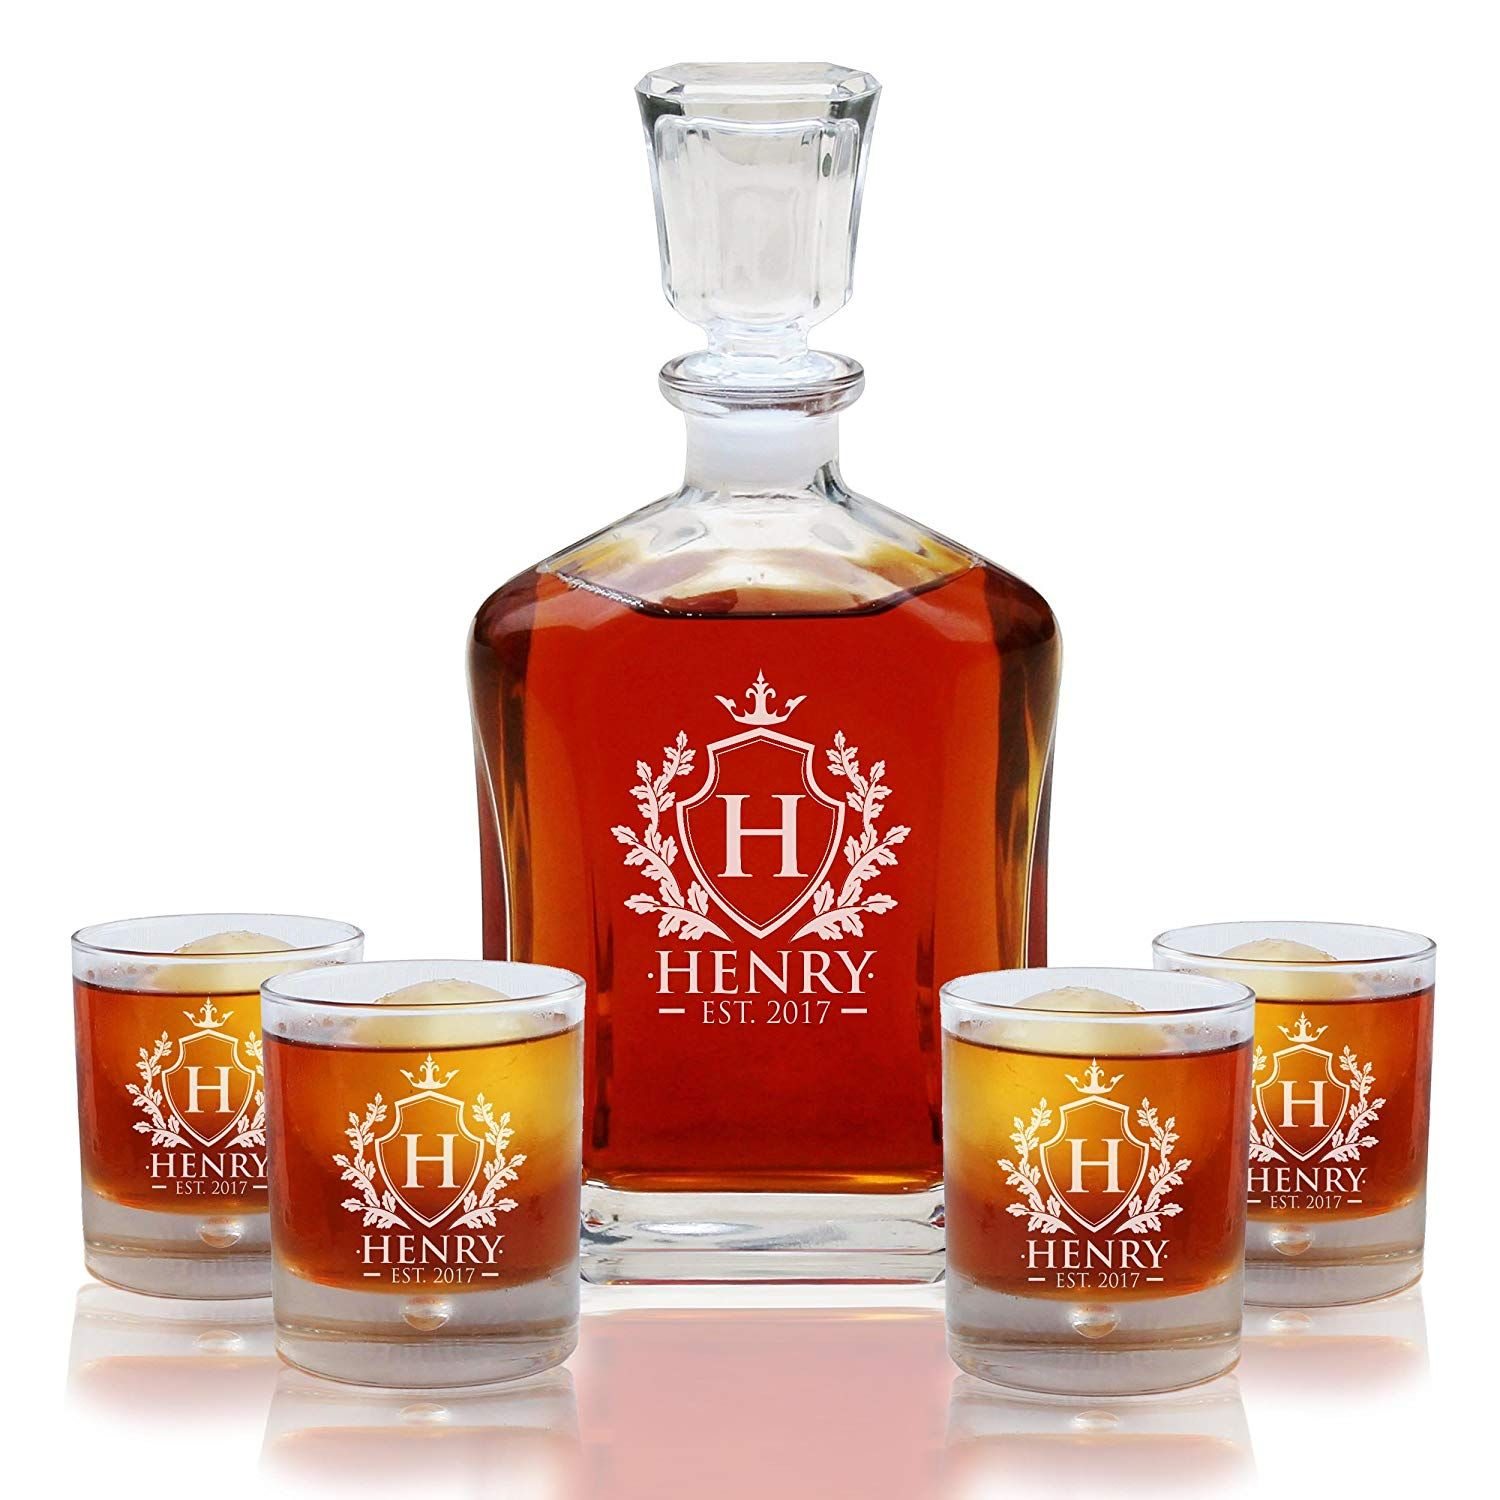 3rd Anniversary Gifts for Him Under 75 Whiskey decanter